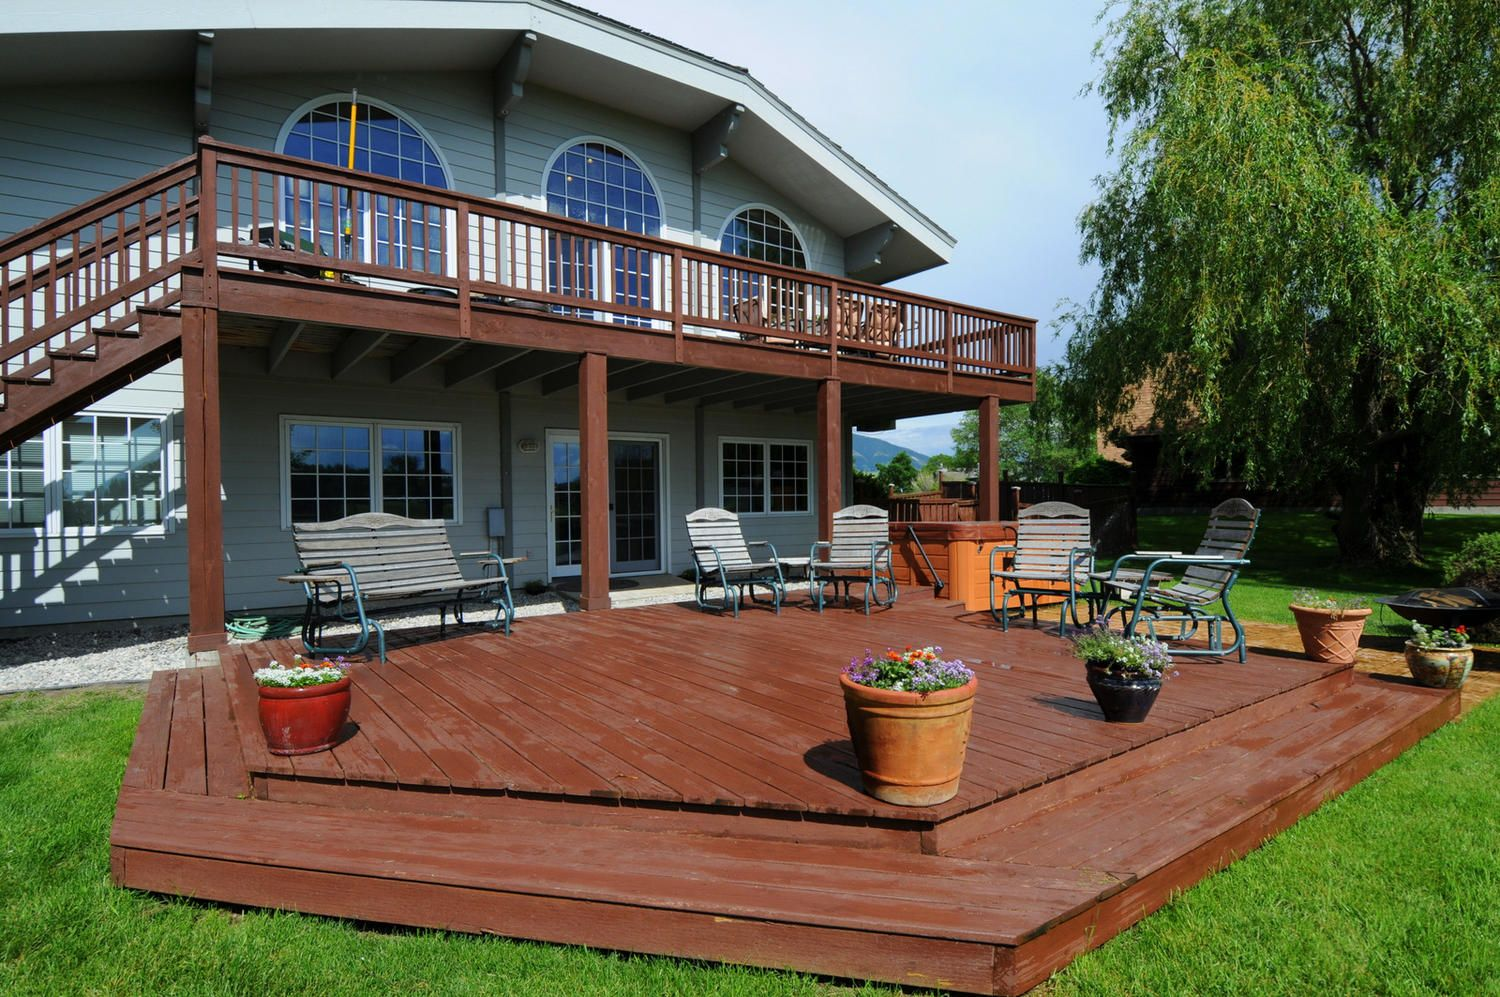 Image Result For Extending Concrete Patio With Wood Deck